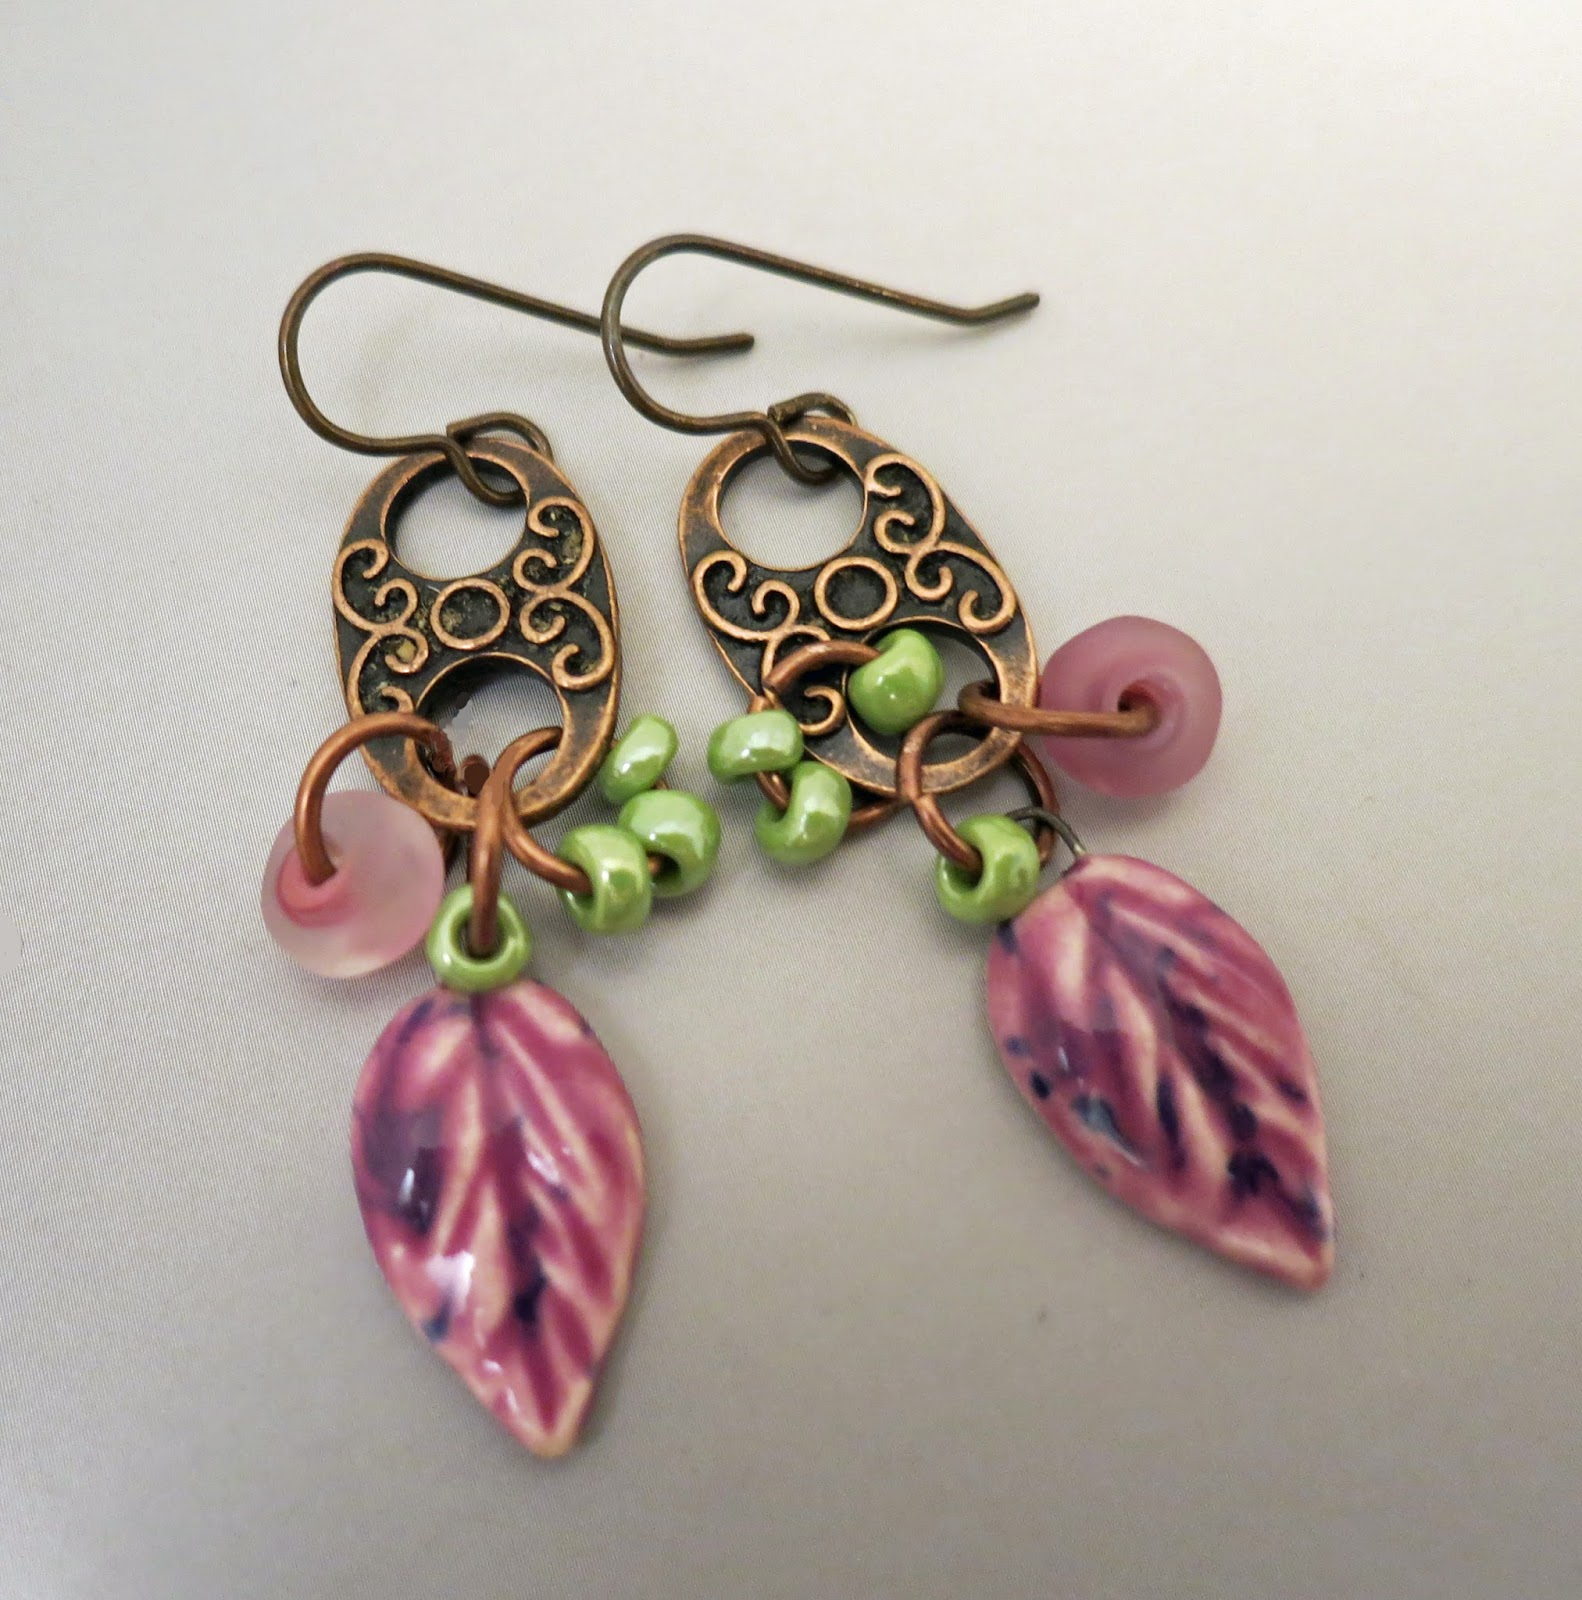 purple everyday botanicals etched i some seed and have movement from nice fall lampwork green beads the lime links earrings with a glass leaves dangled along